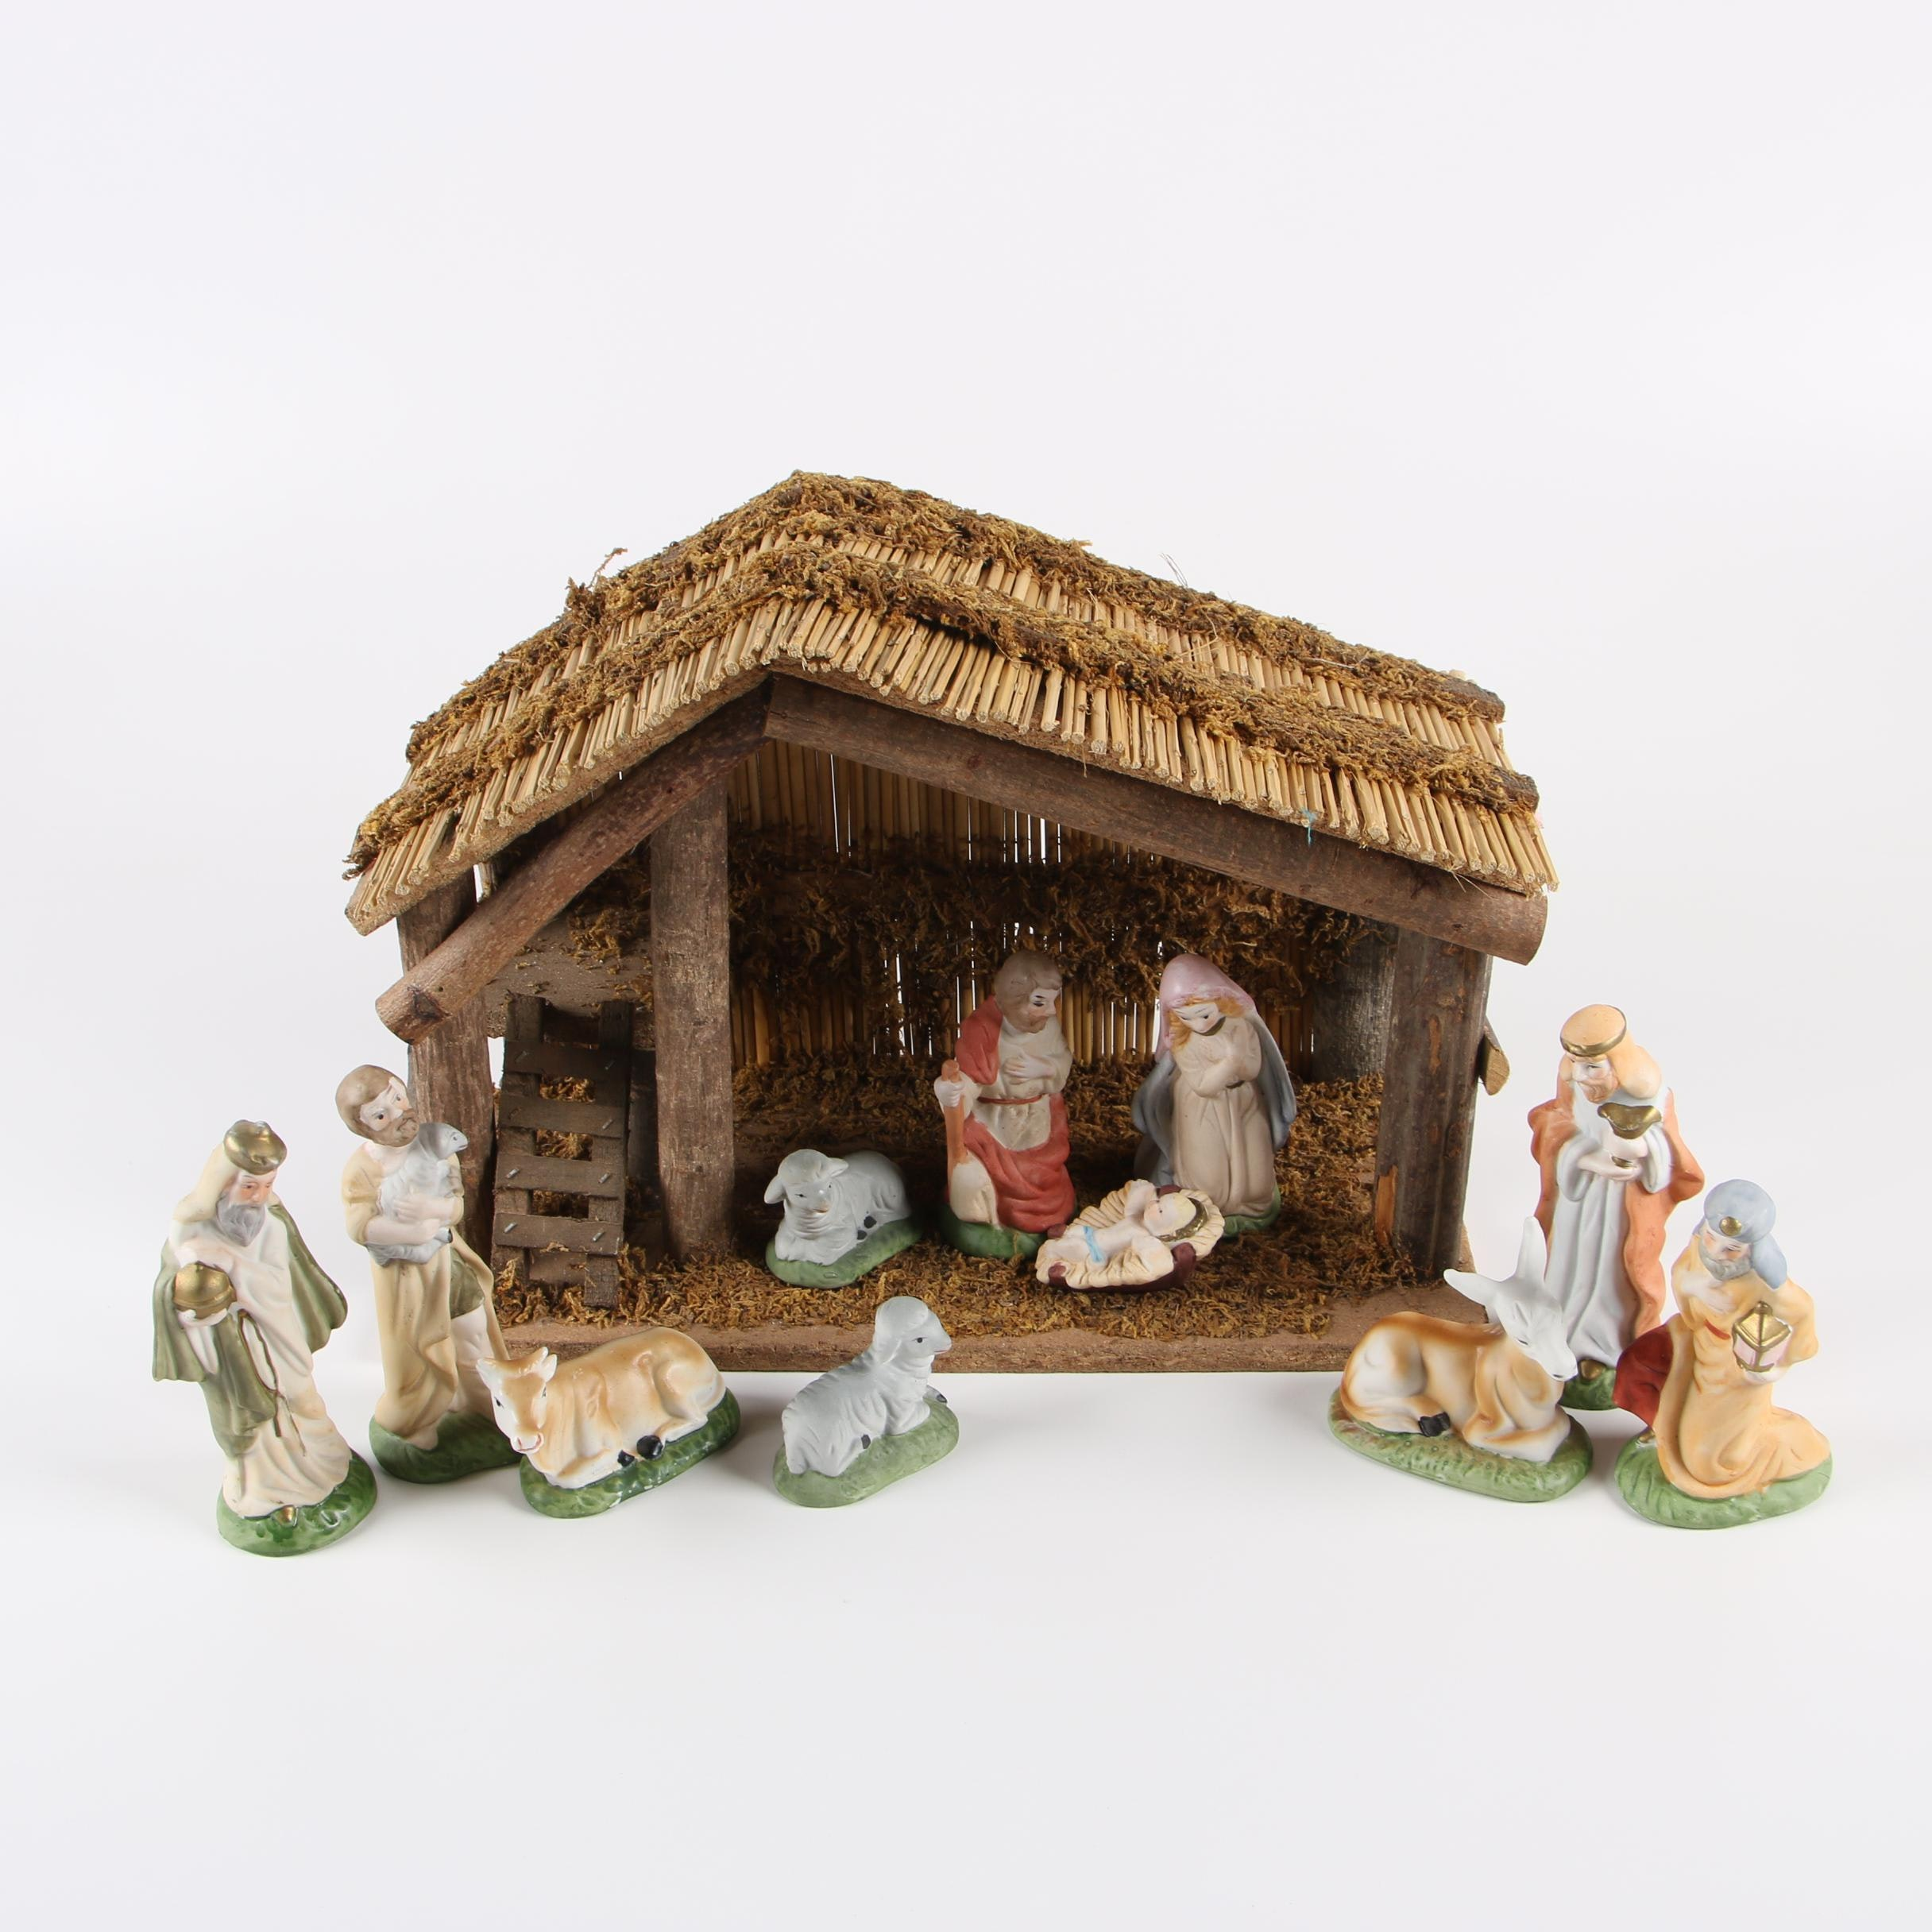 Ceramic Nativity Set with Wooden Stable